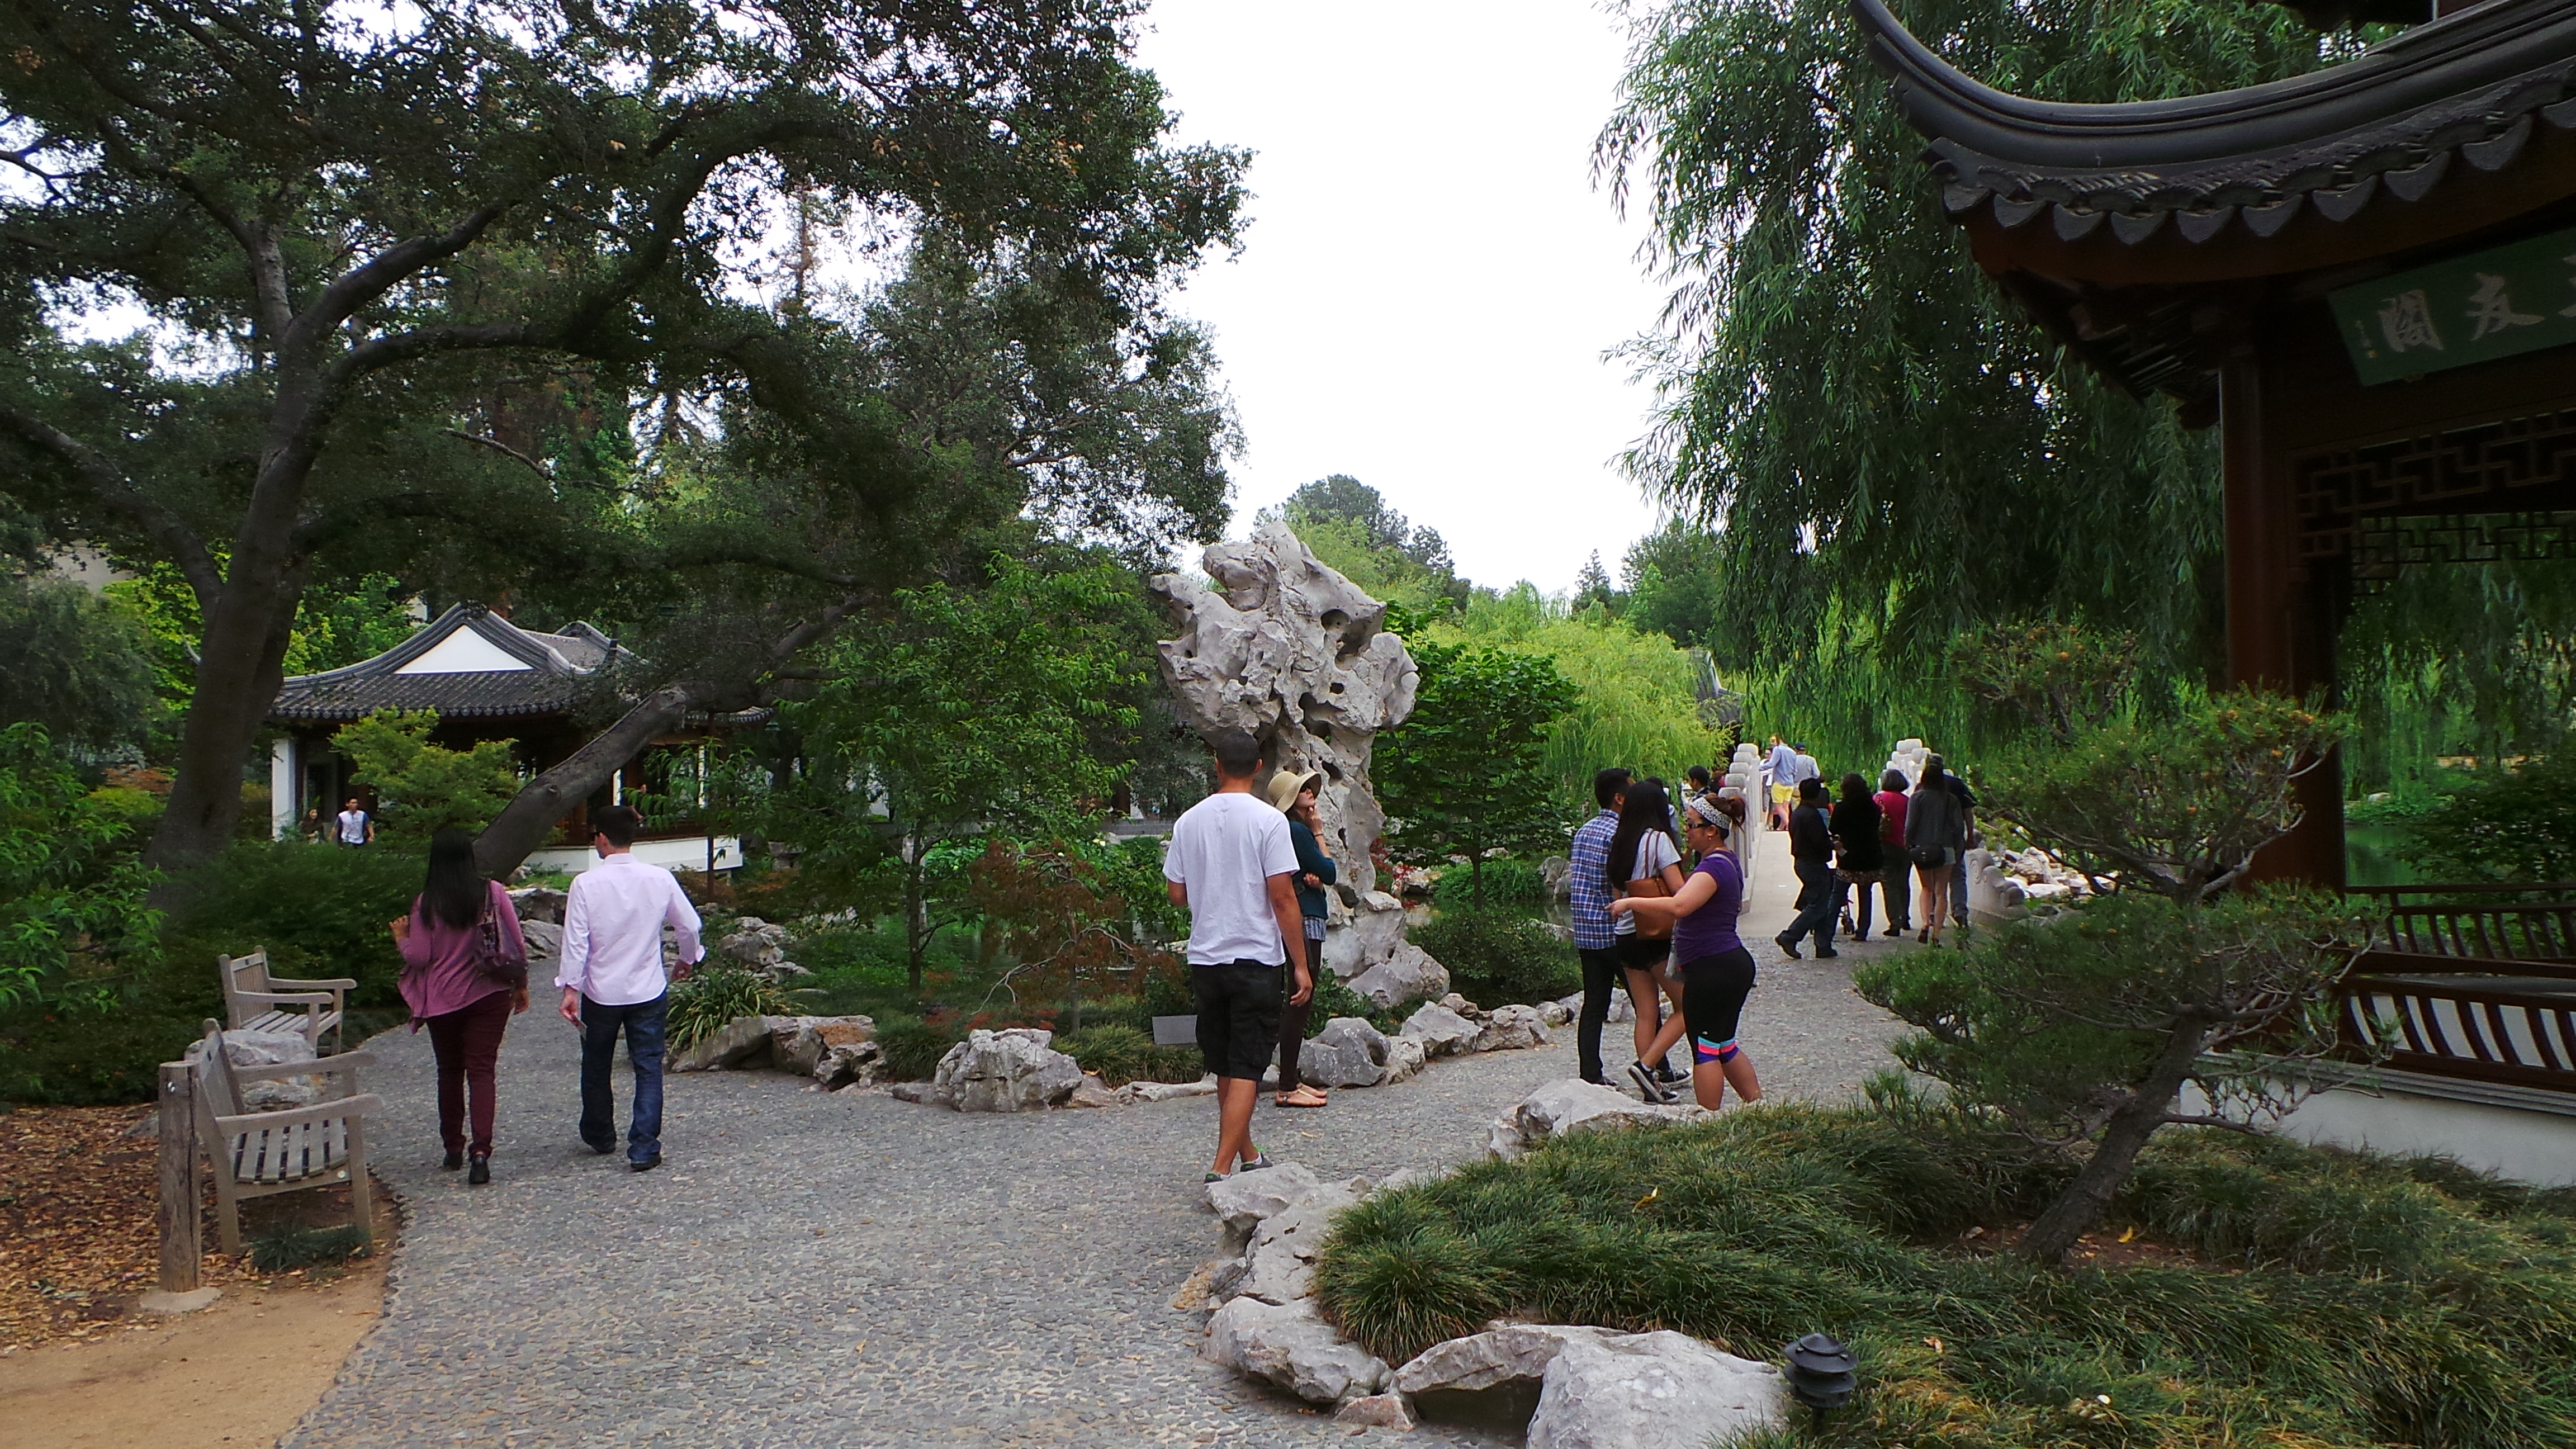 The Huntington Library Art Collections and Botanical Gardens in